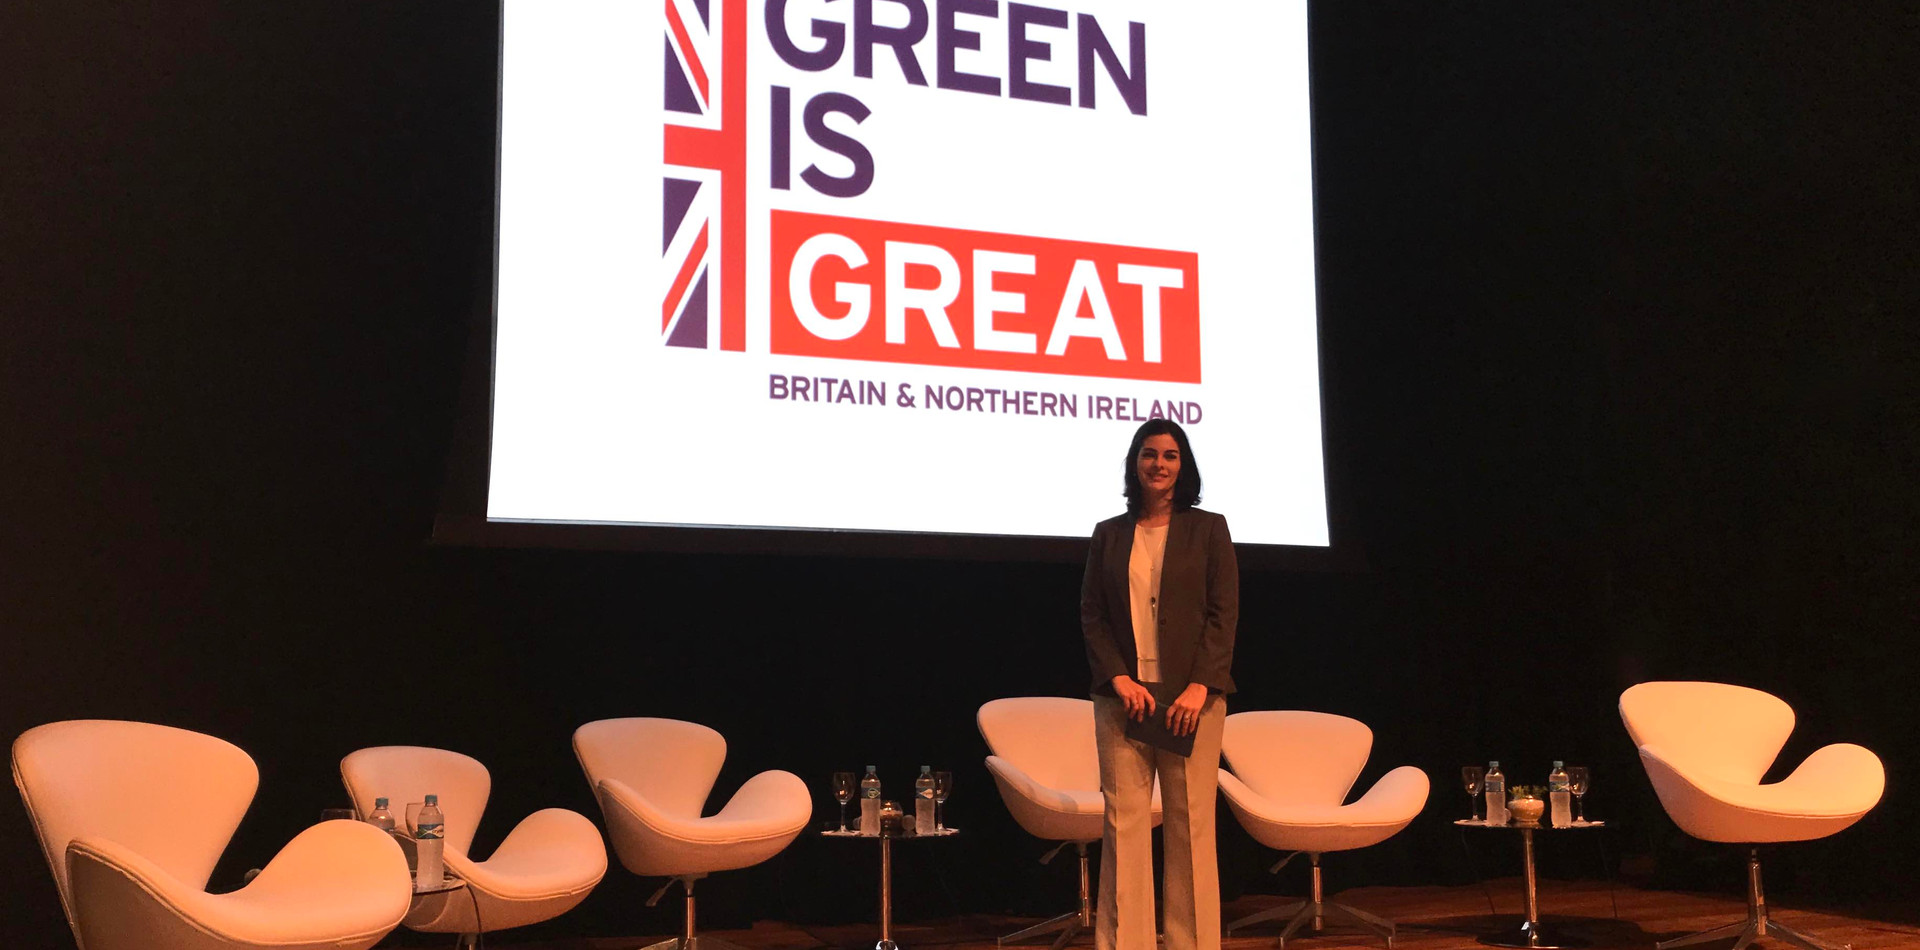 UK Green Summit 2018